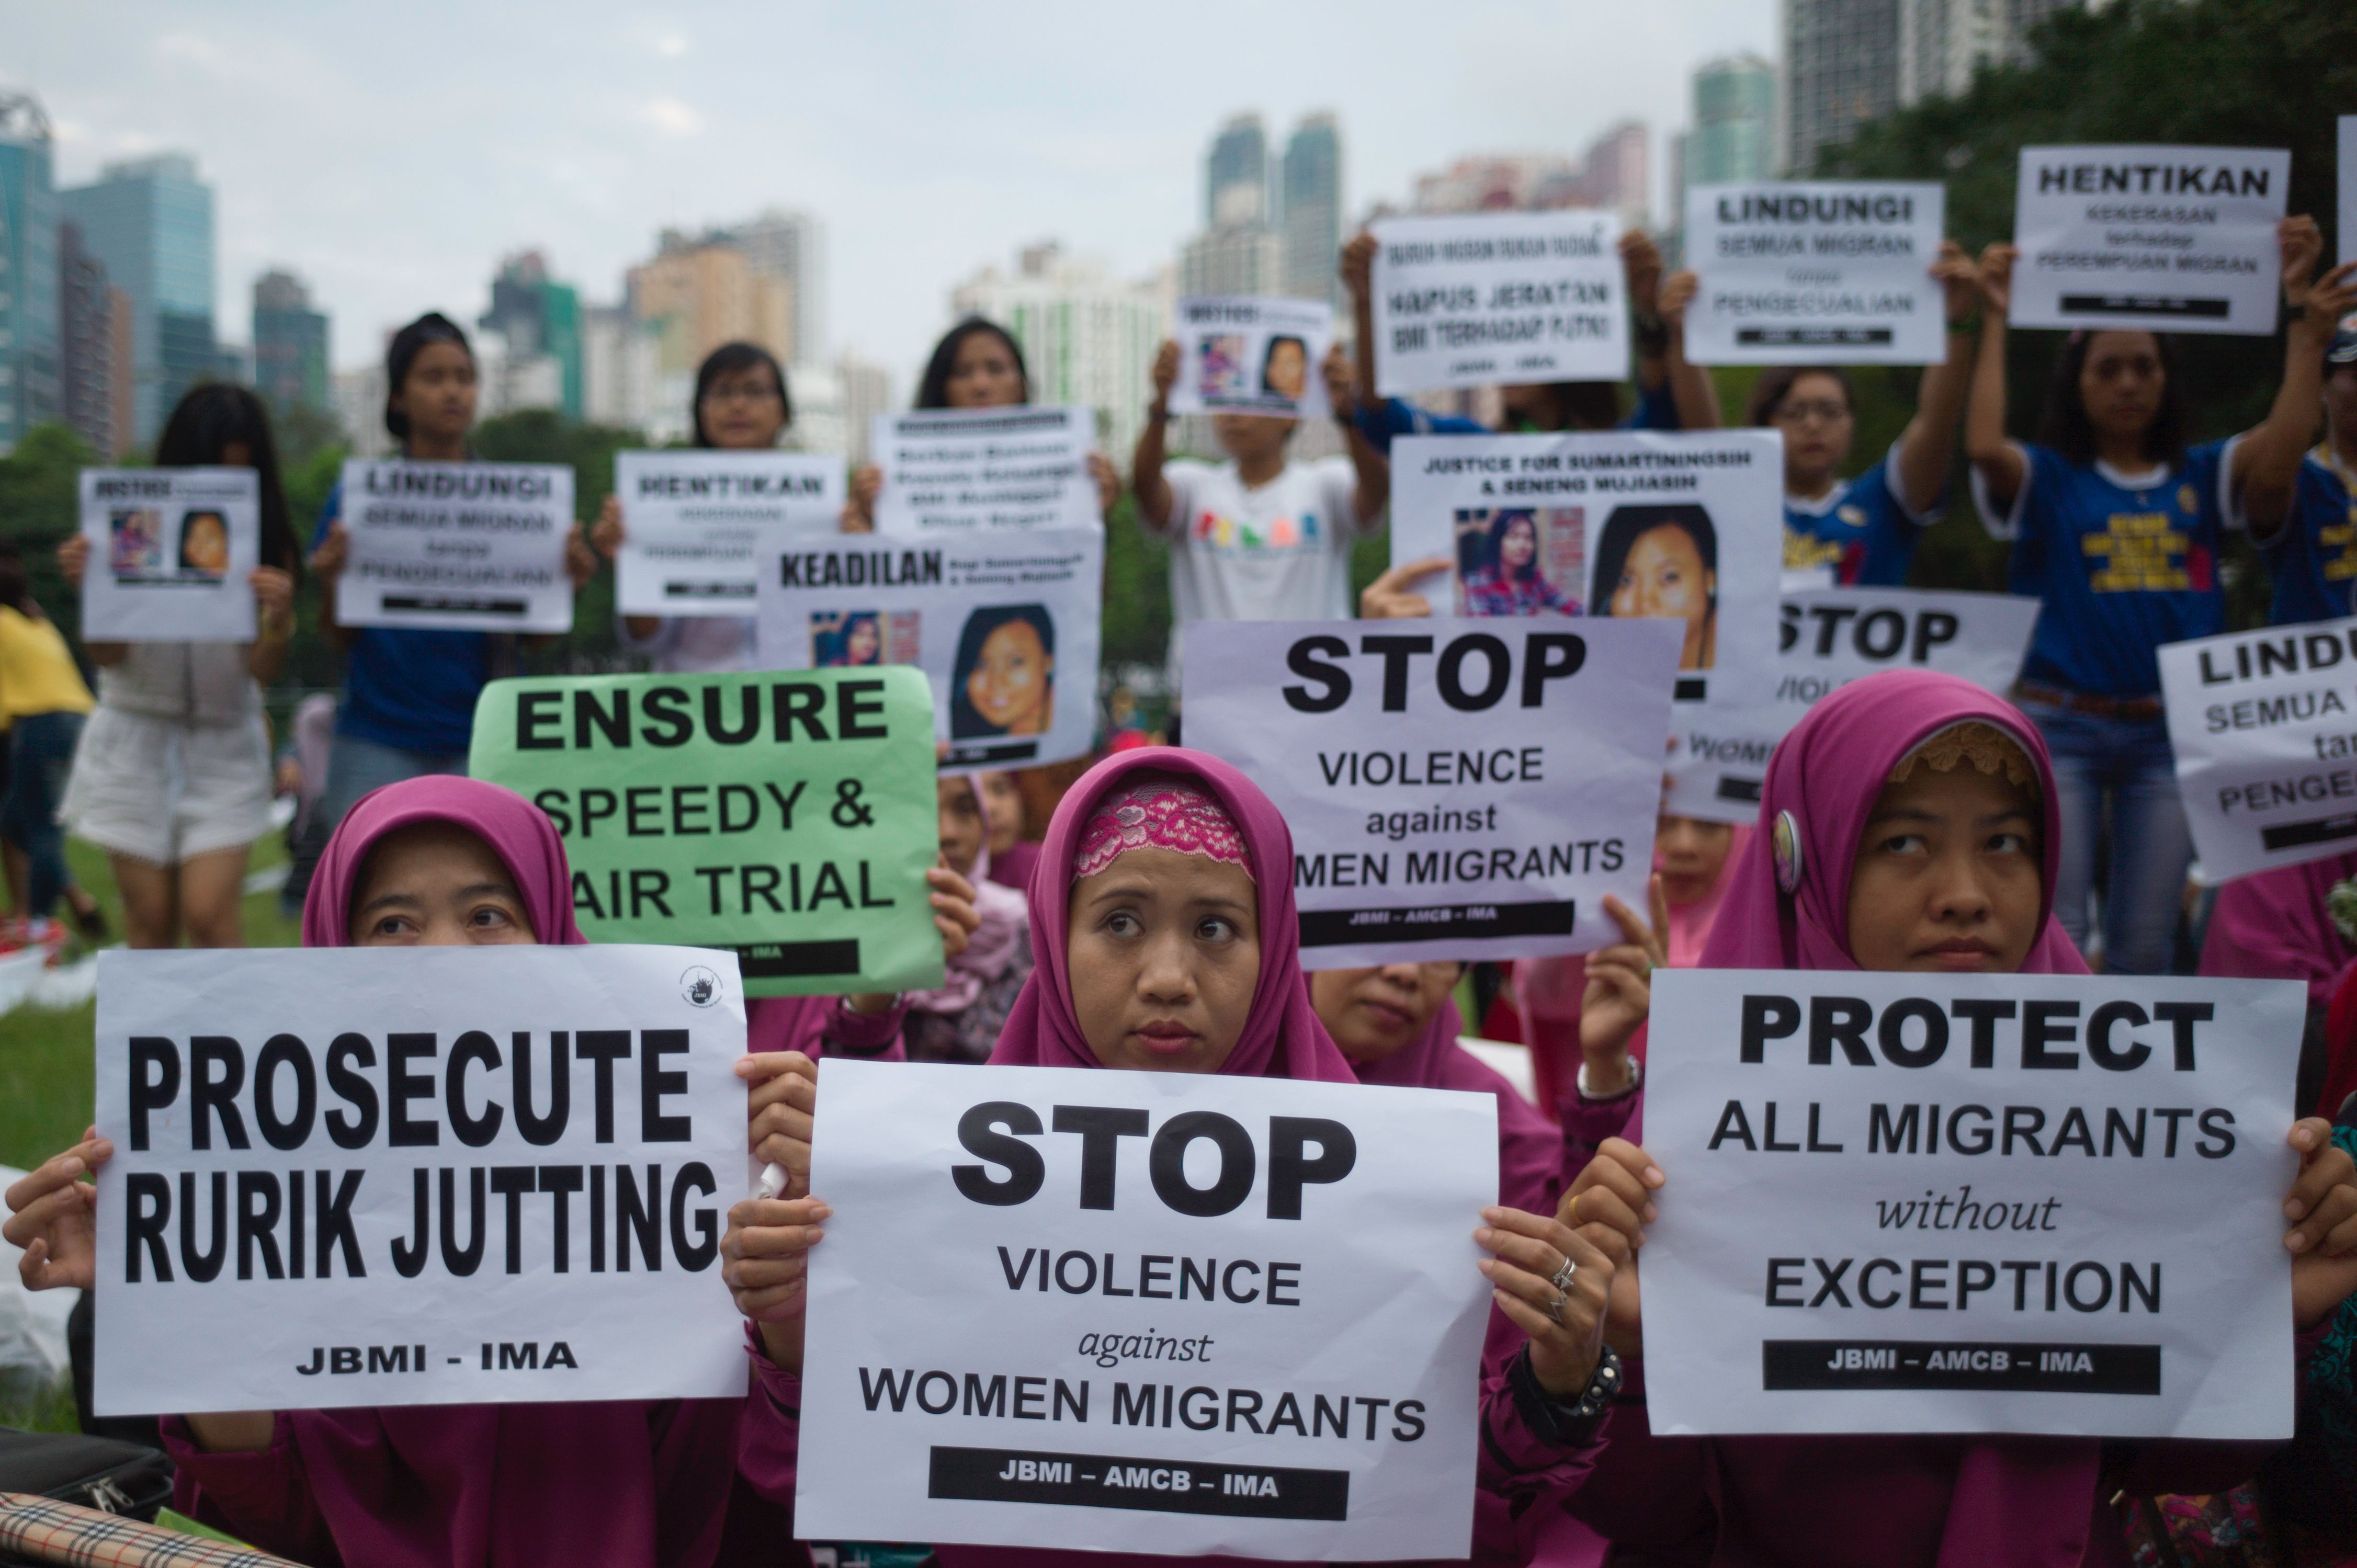 Indonesian migrant workers hold up placards during a vigil for slain colleagues Seneng Mujiasih and Sumarti Ningsih on the eve of the murder trial for British banker Rurik Jutting, in Hong Kong's Victoria Park on Oct. 23, 2016